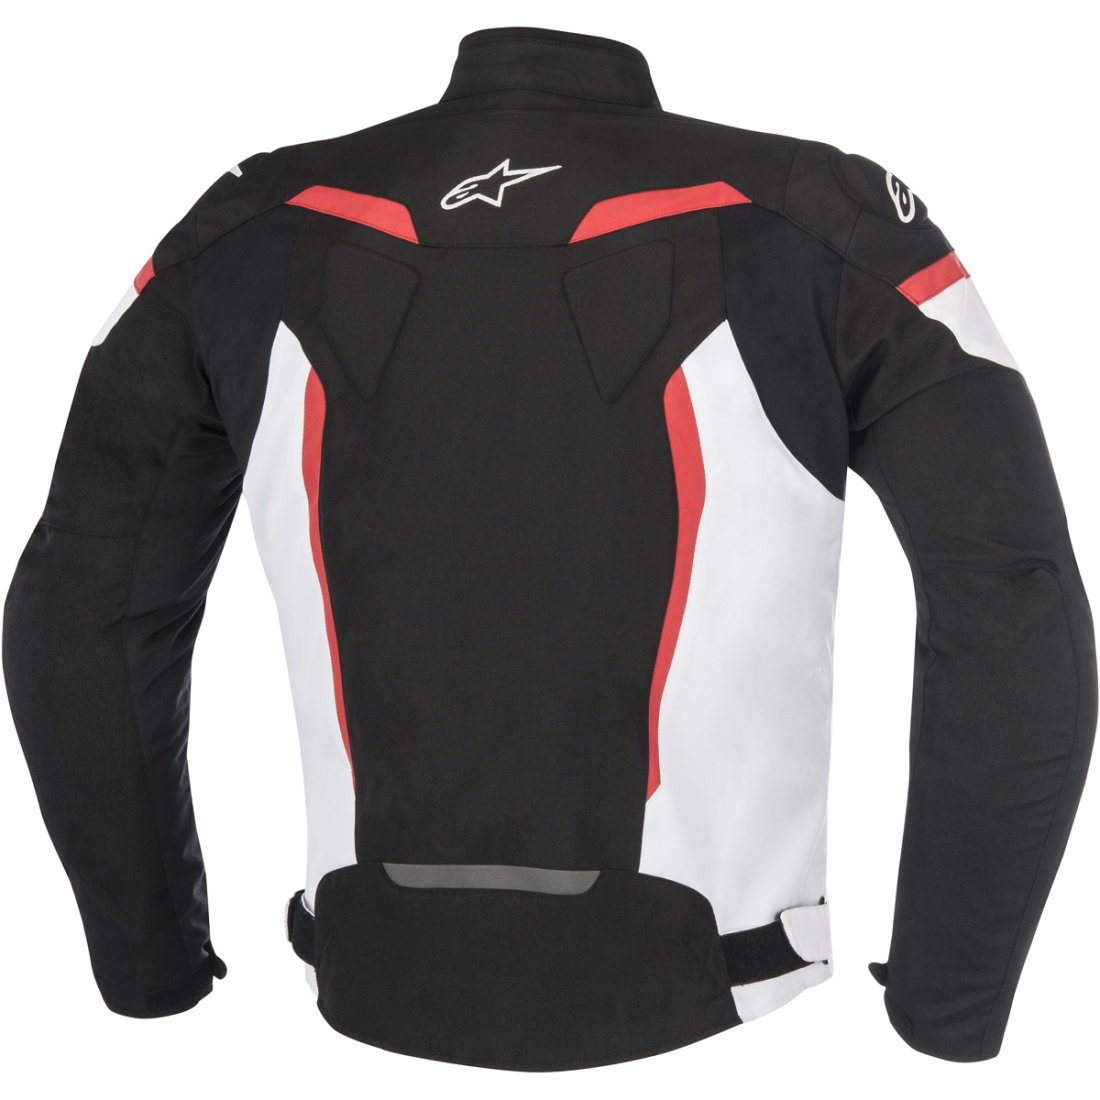 alpinestars t gp plus r v2 black white red jacket motocard. Black Bedroom Furniture Sets. Home Design Ideas